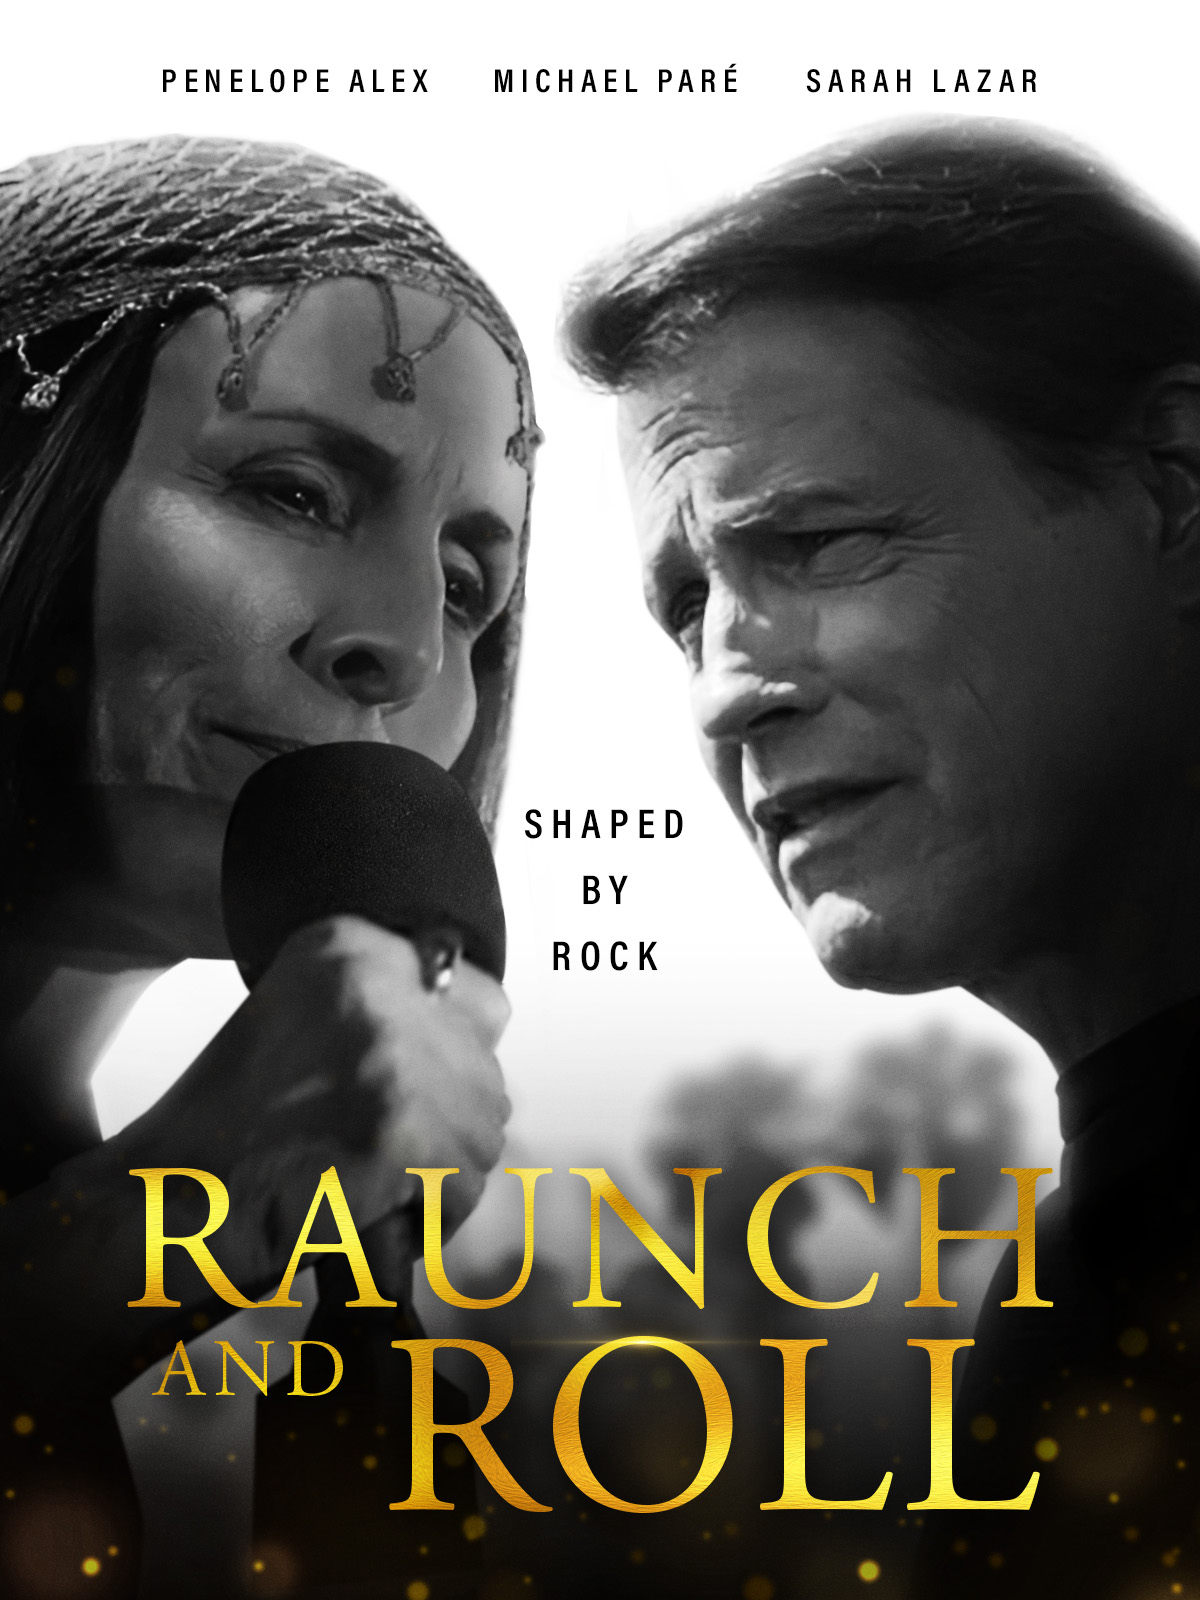 watch Raunch and Roll on soap2day